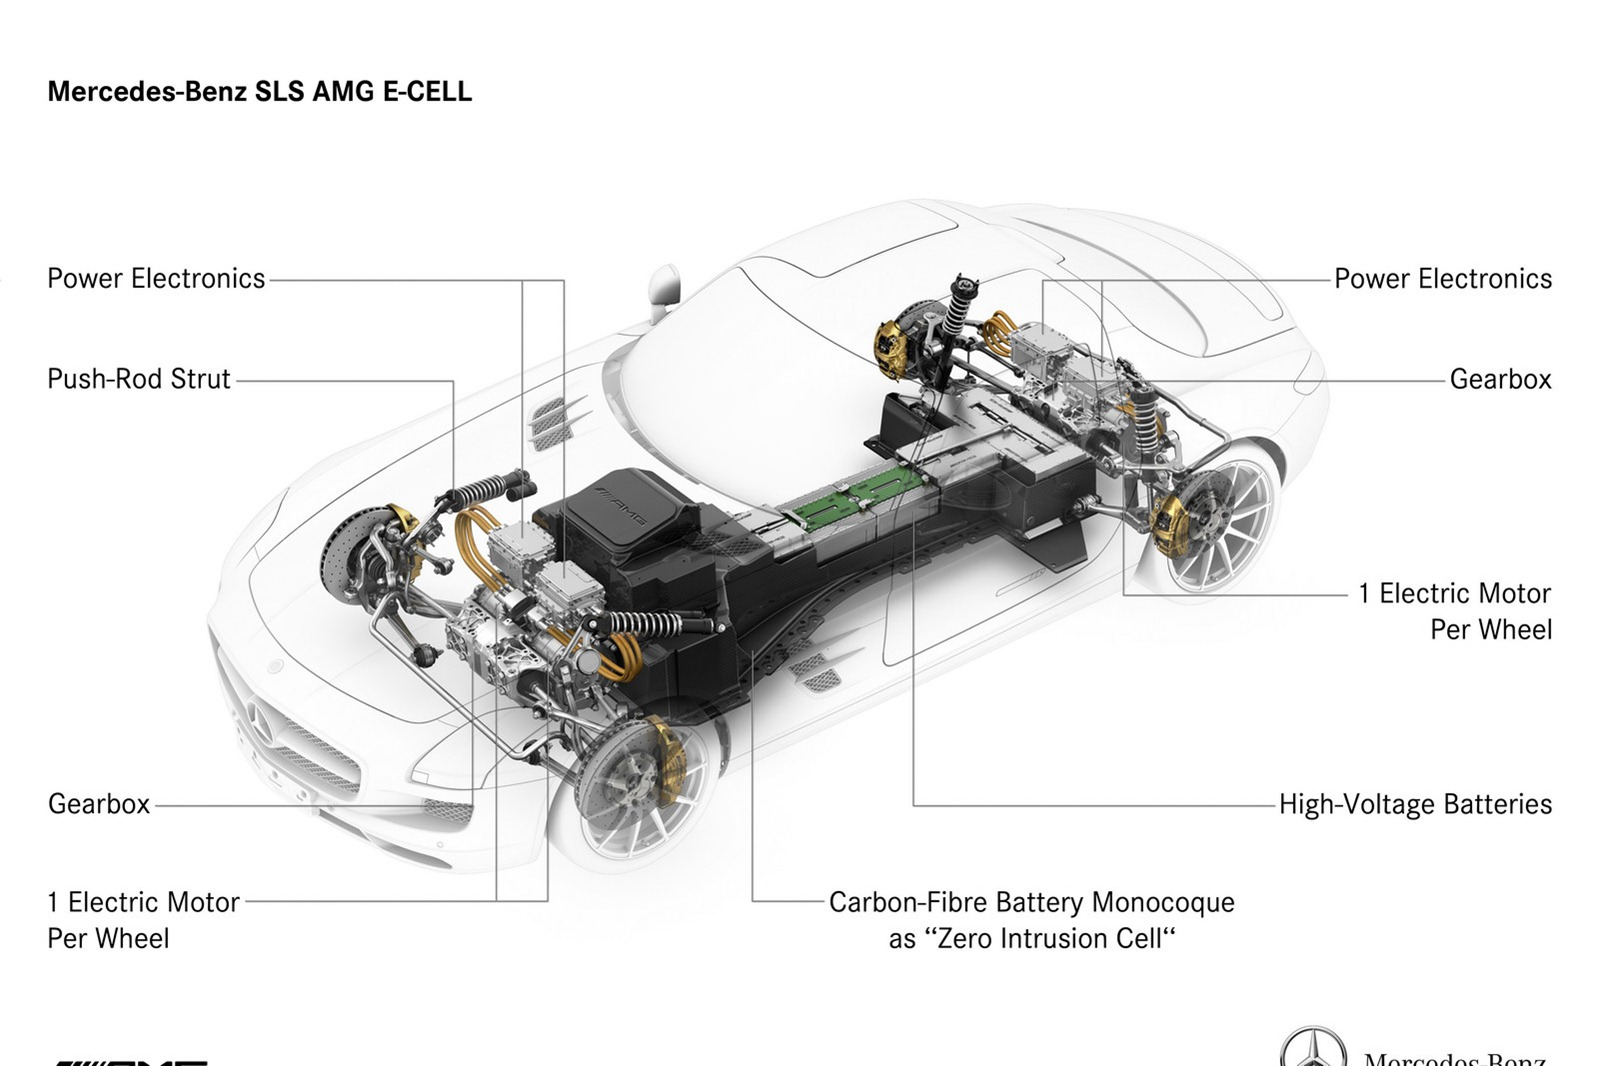 medium resolution of mercedes reveal sls e cell s awd torque vectoring powertrain electric vehicle news